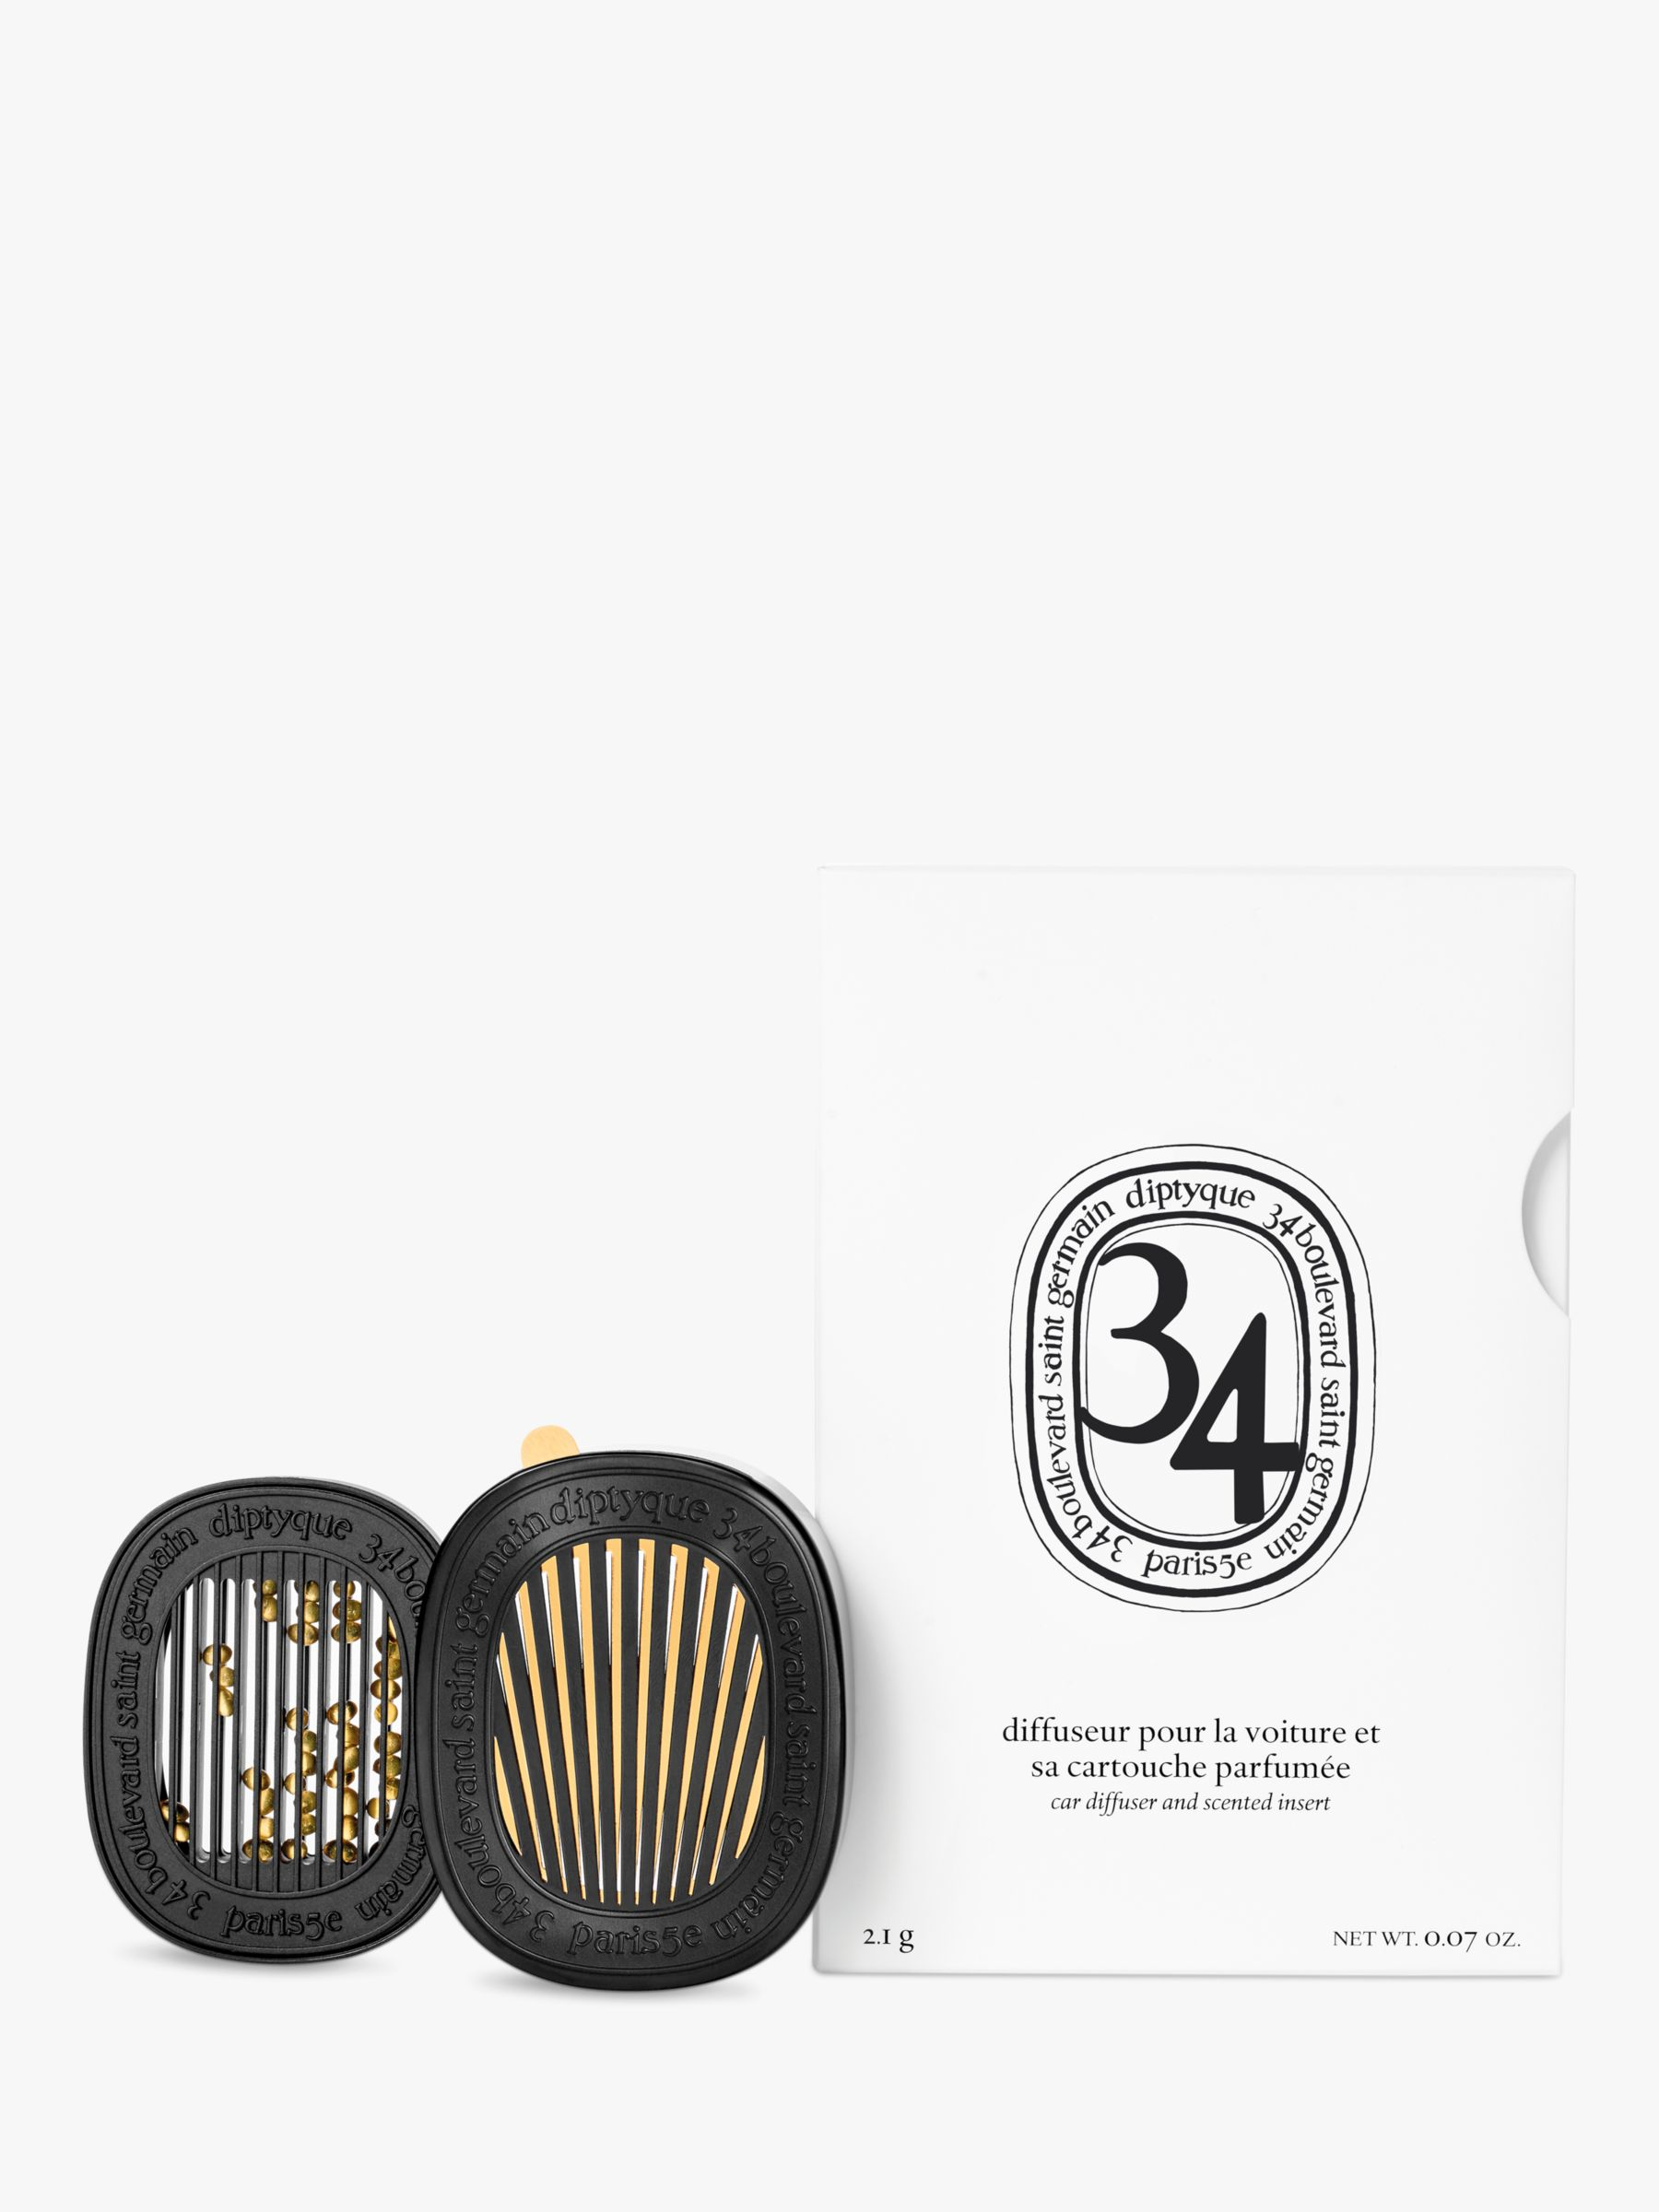 Diptyque Diptyque Car Diffuser with 34 Boulevard Germain Insert, 2.1g